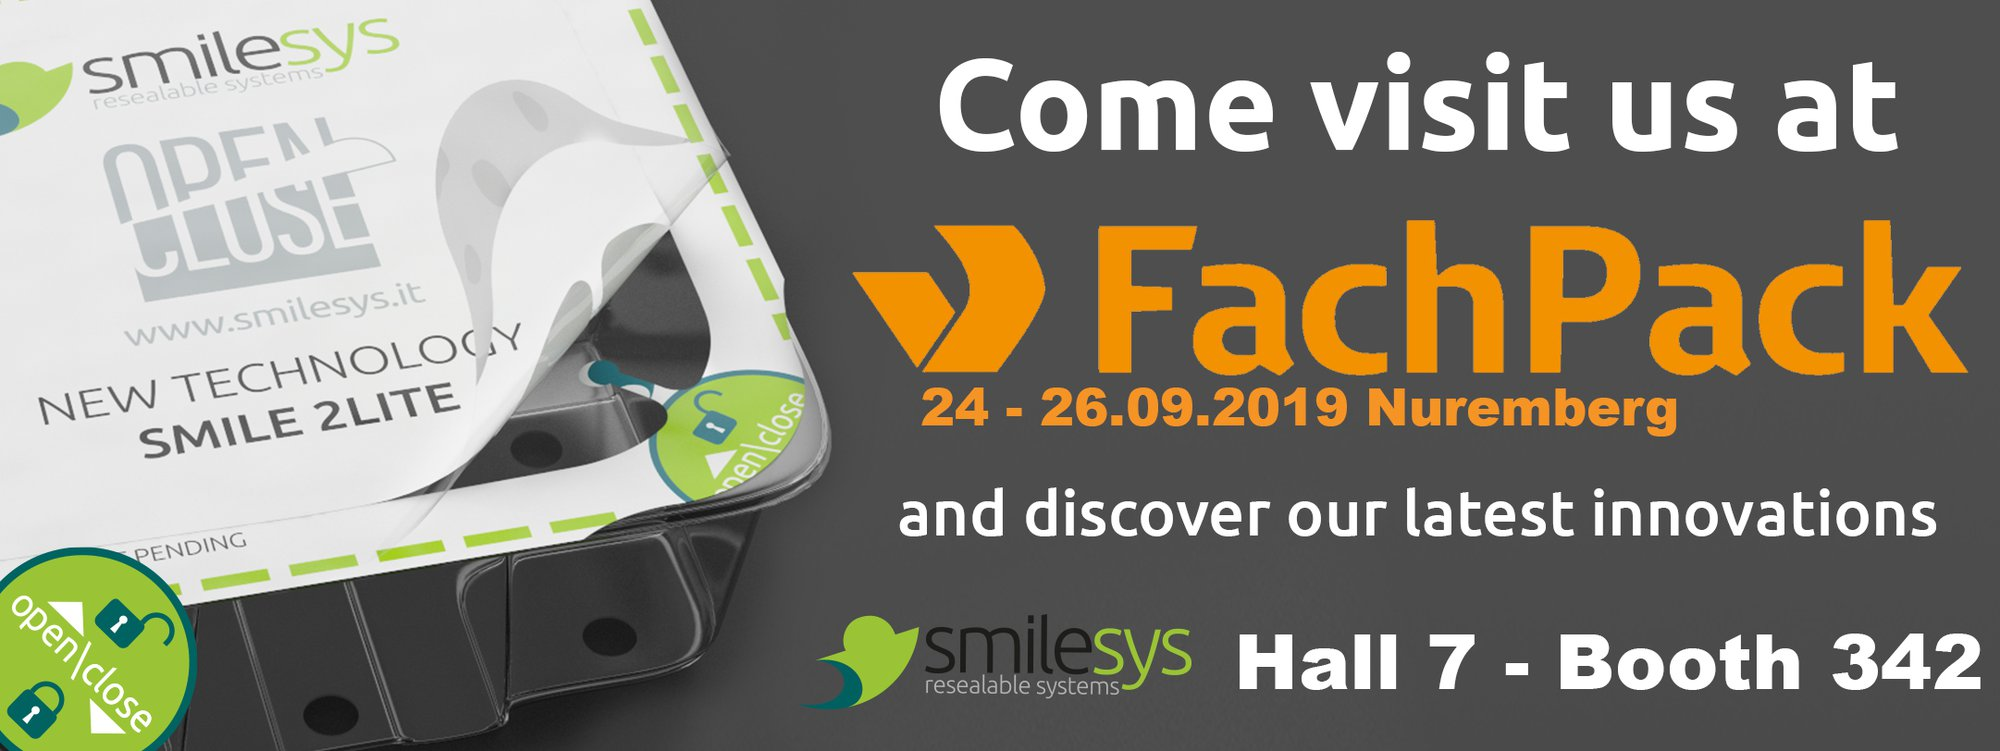 Smilesys Fachpack 2019, espositore, FachPack, fiera 2019, fiera packaging